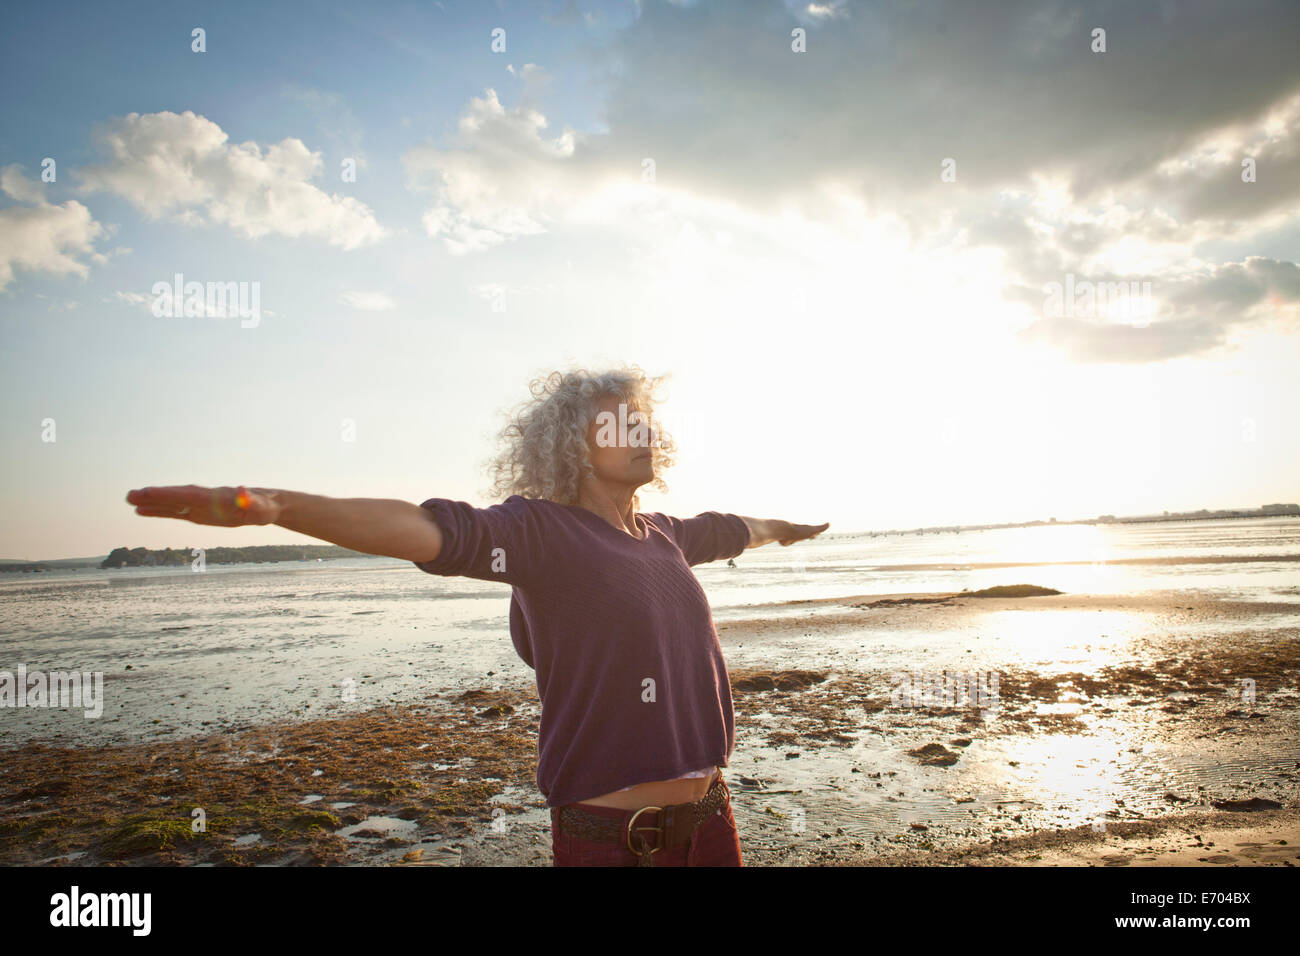 Mature woman exercising on beach - Stock Image